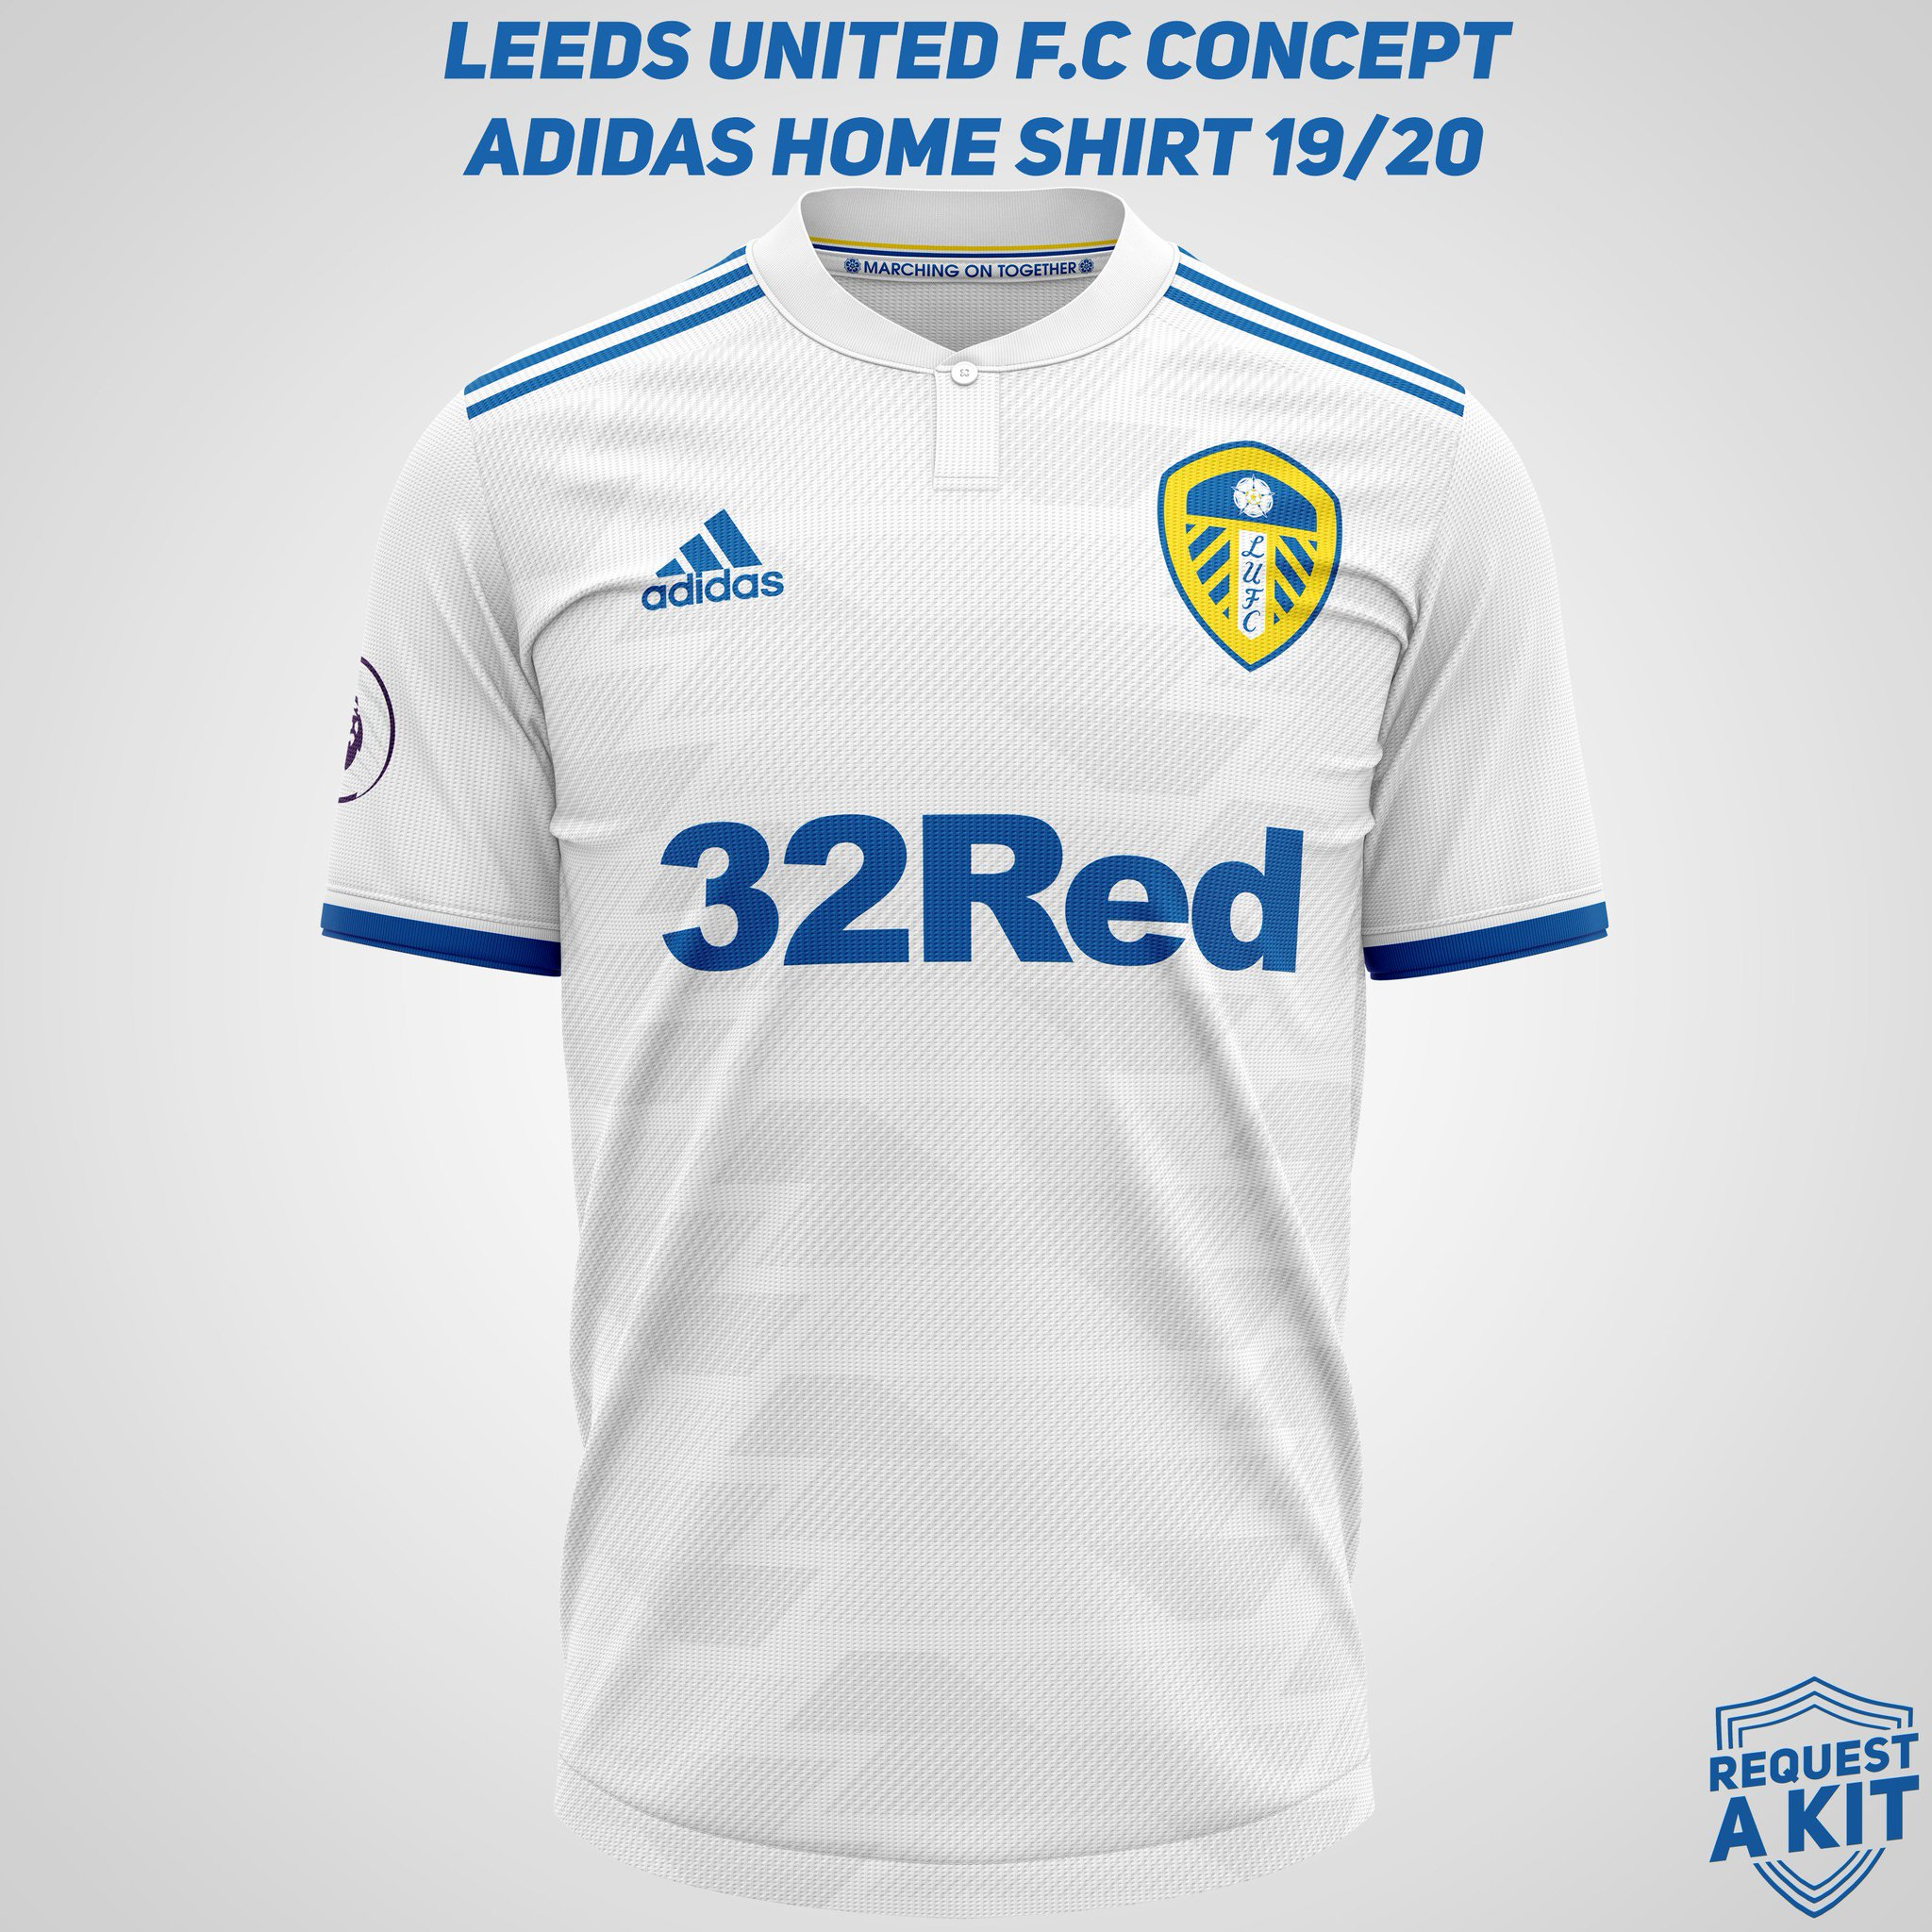 Request A Kit On Twitter Leeds United F C Concept Adidas Home Away And Third Shirts 2019 20 Requested By Leonvol12 Lufc Leedsunited Superleeds Marchingontogether Leedsleedsleeds Leedscarajo Fm19 Wearethecommunity Download For Your